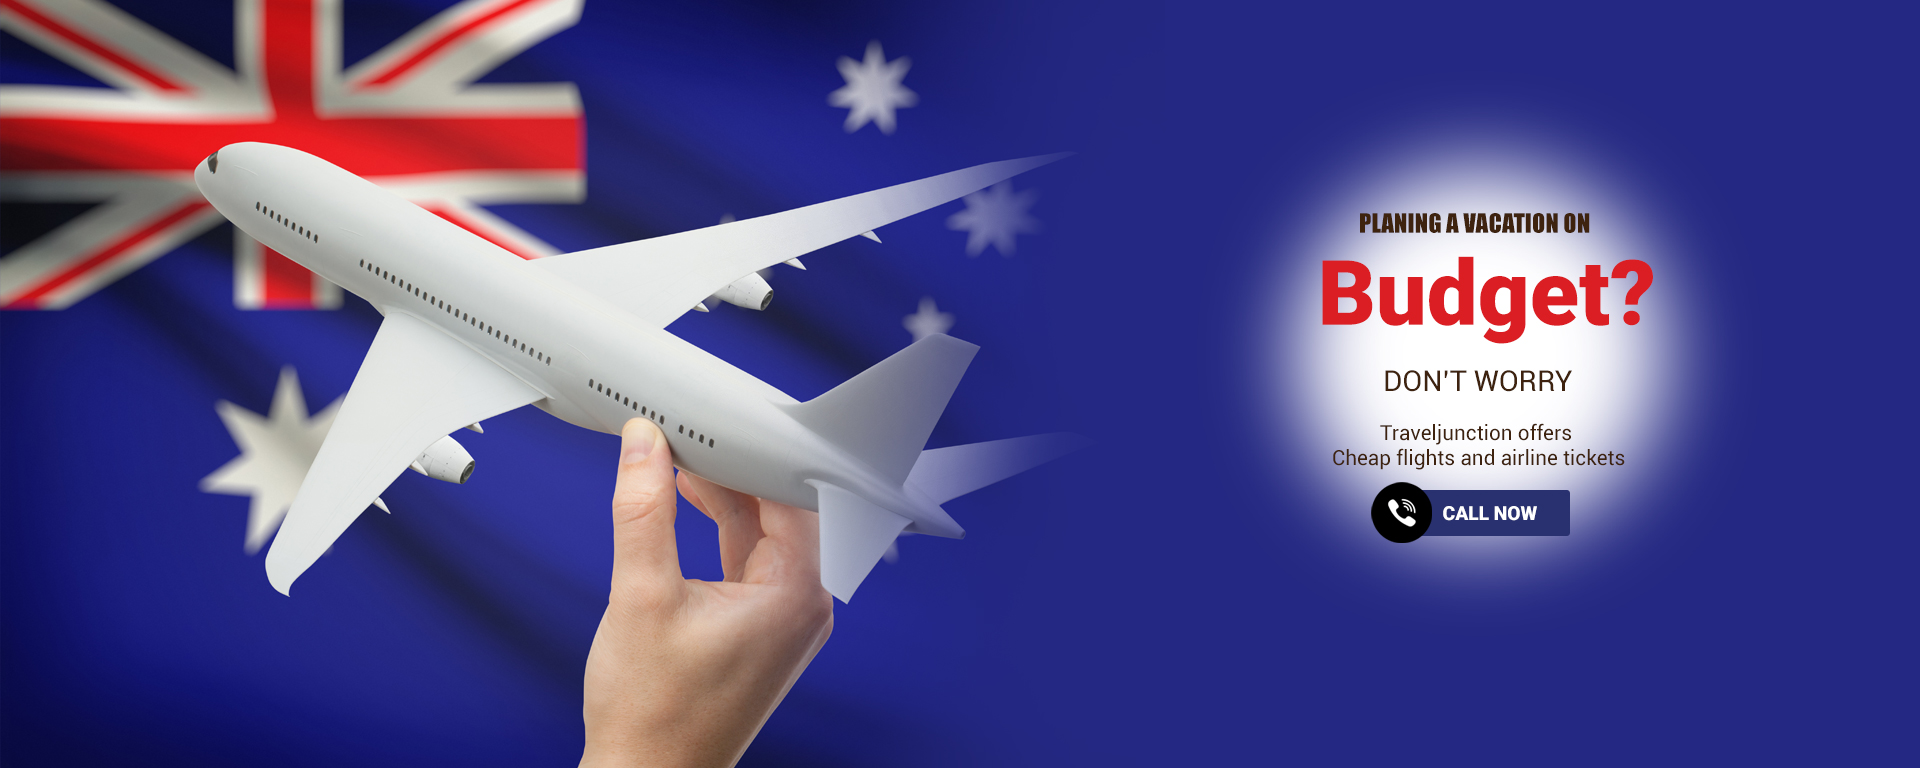 Exclusive Easter special cheap flights deals at traveljunction.co.uk and book lowest air flight